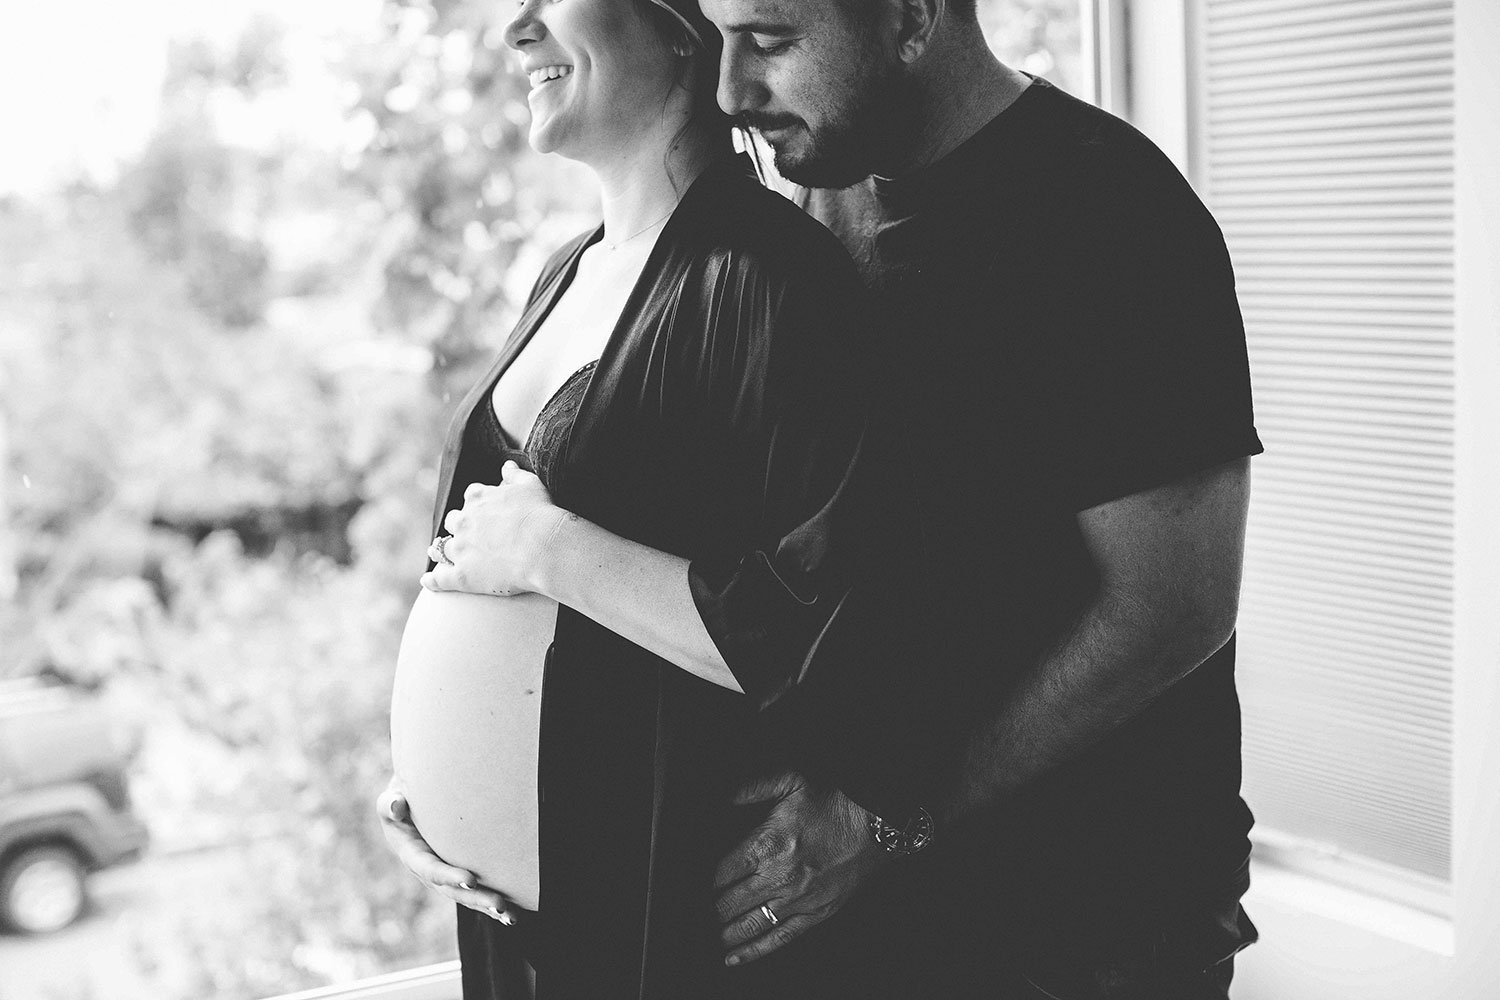 alex_and_kyle_black_and_white_maternity_6.jpg